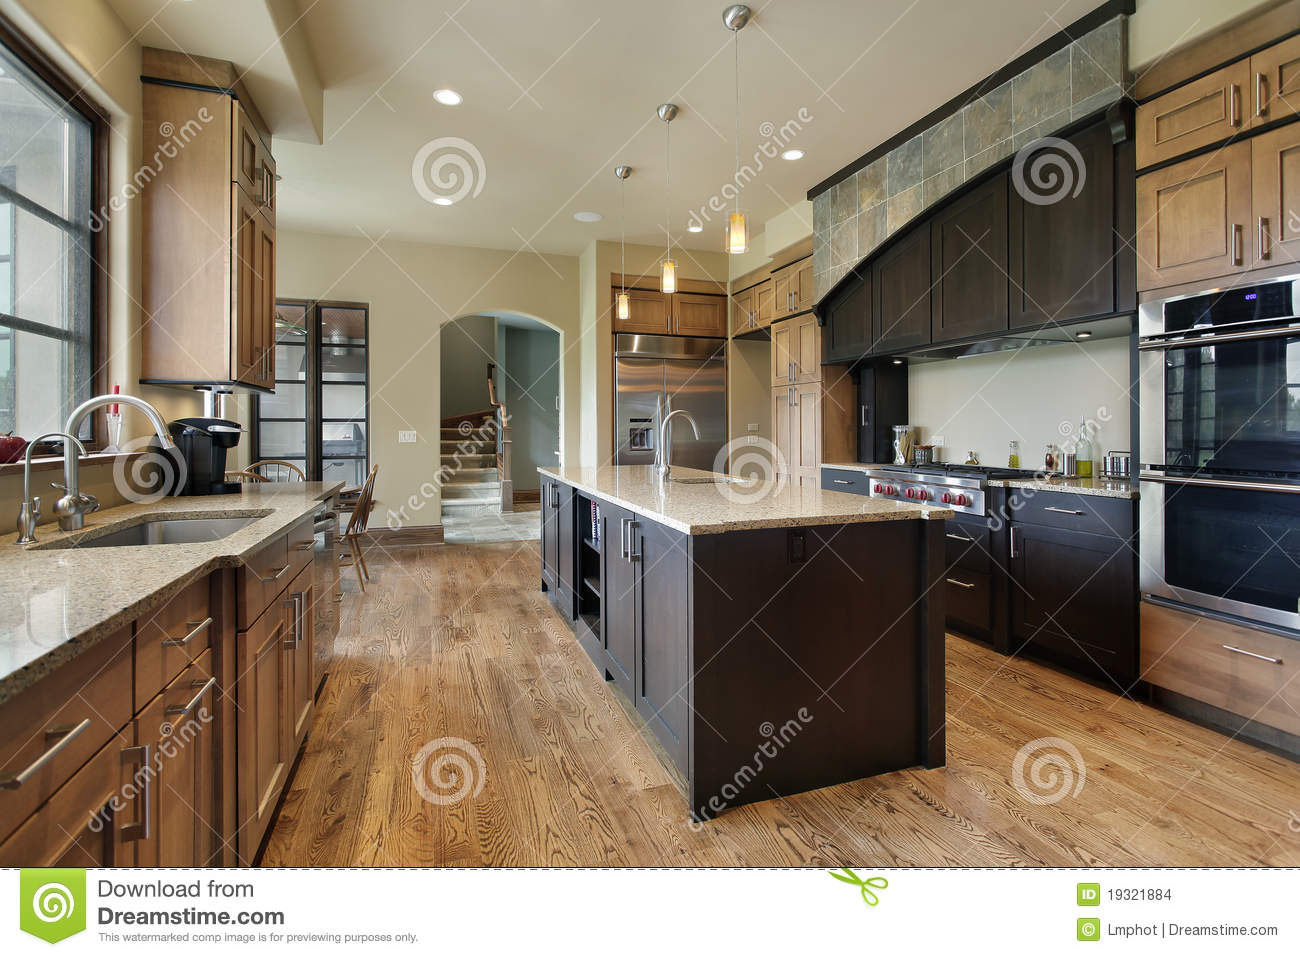 Kitchen With Large Center Island Stock Images  Image 19321884